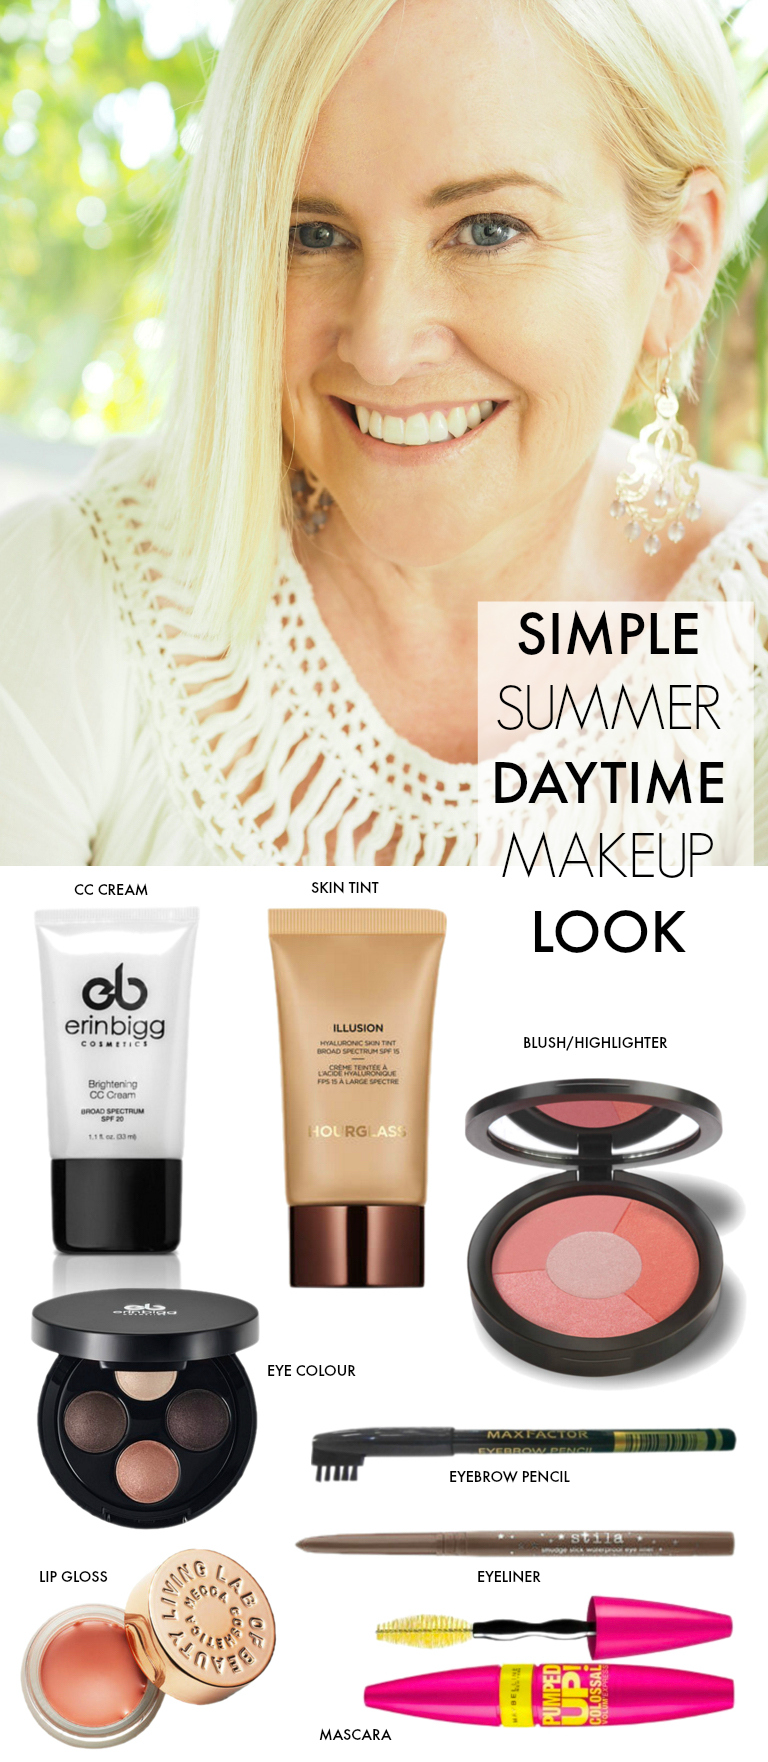 How to create a simple summer daytime makeup